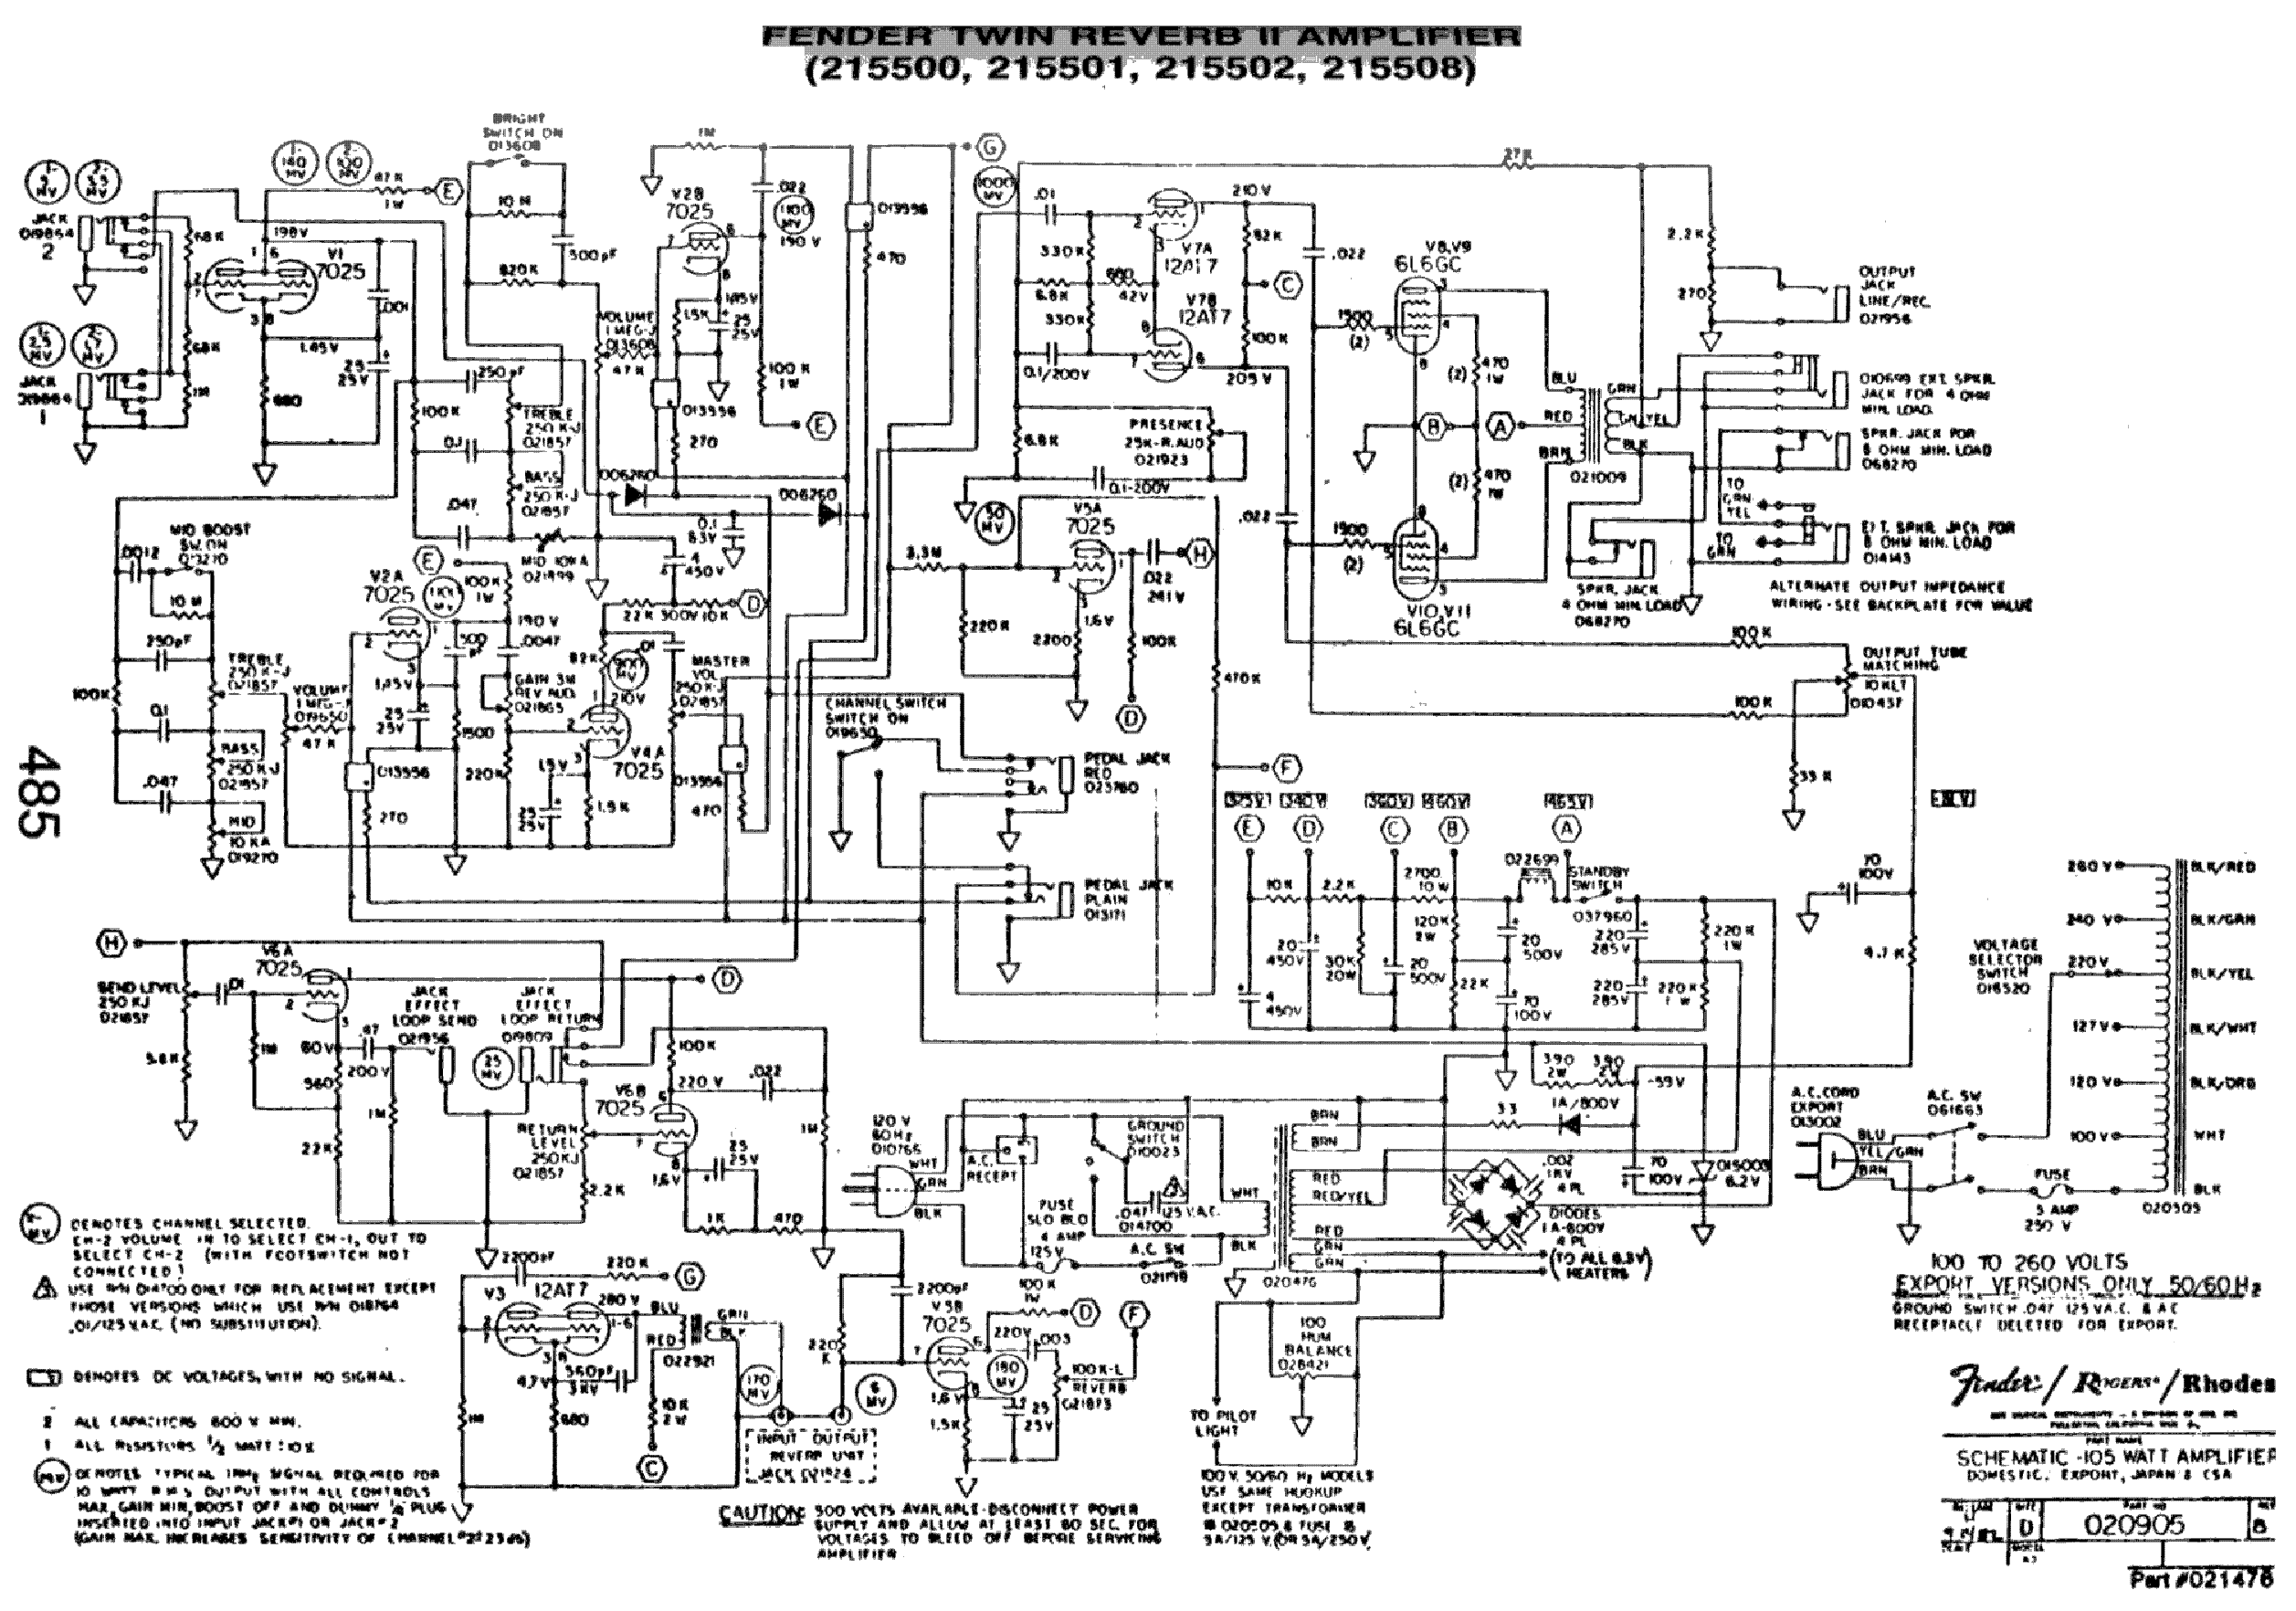 FENDER TWIN REVERB II SCH Service Manual download, schematics ... on fender stage lead schematic, fender twin amp, fender quad reverb schematic, fender champ schematic parts list, fender twin silverface, fender super twin schematic, fender dual showman schematic, fender bandmaster reverb schematic, roland jc120 schematic, fender reverb tank schematic, fender the twin schematic, fender pro schematic, fender concert schematic, fender hot rod deville 410 schematic, fender bantam bass schematic, fender twin master volume schematic, fender blues jr. schematic, fender 5f1 schematic, fender champ reverb schematic, fender footswitch schematic,